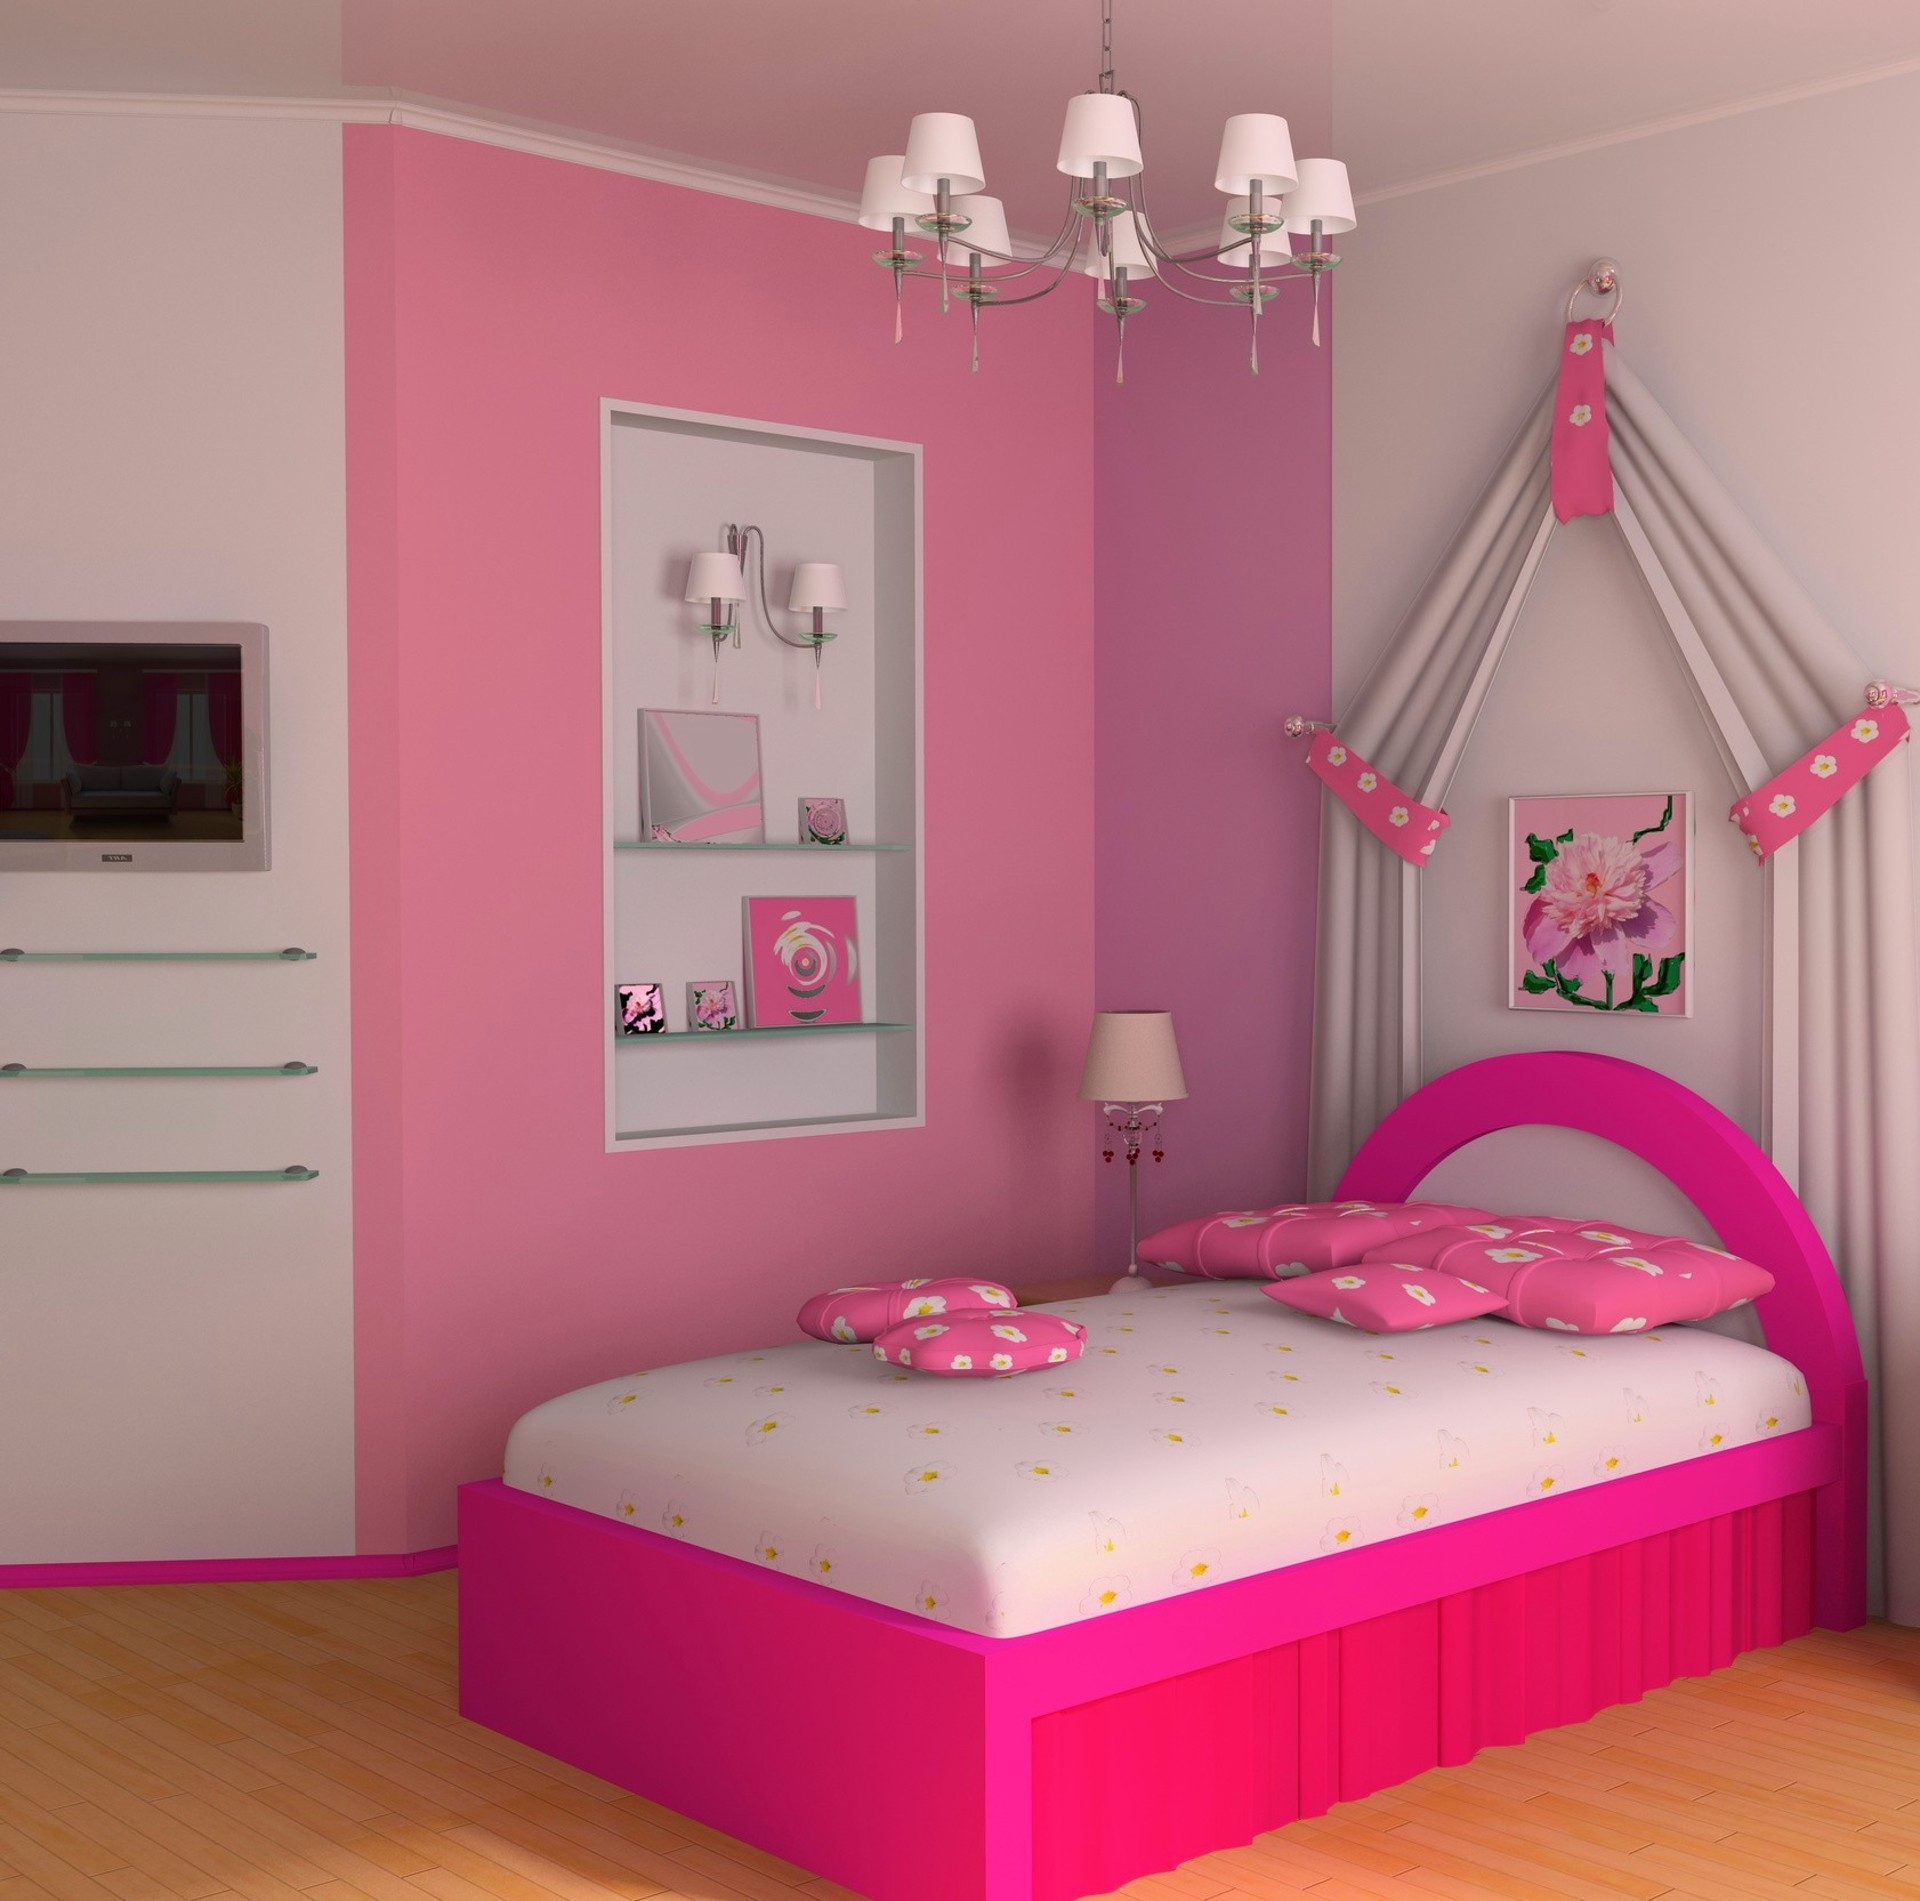 Teen Bedroom Ideas Girls Simple Pikn Barbie Themed Teen Girl Bedroom Design